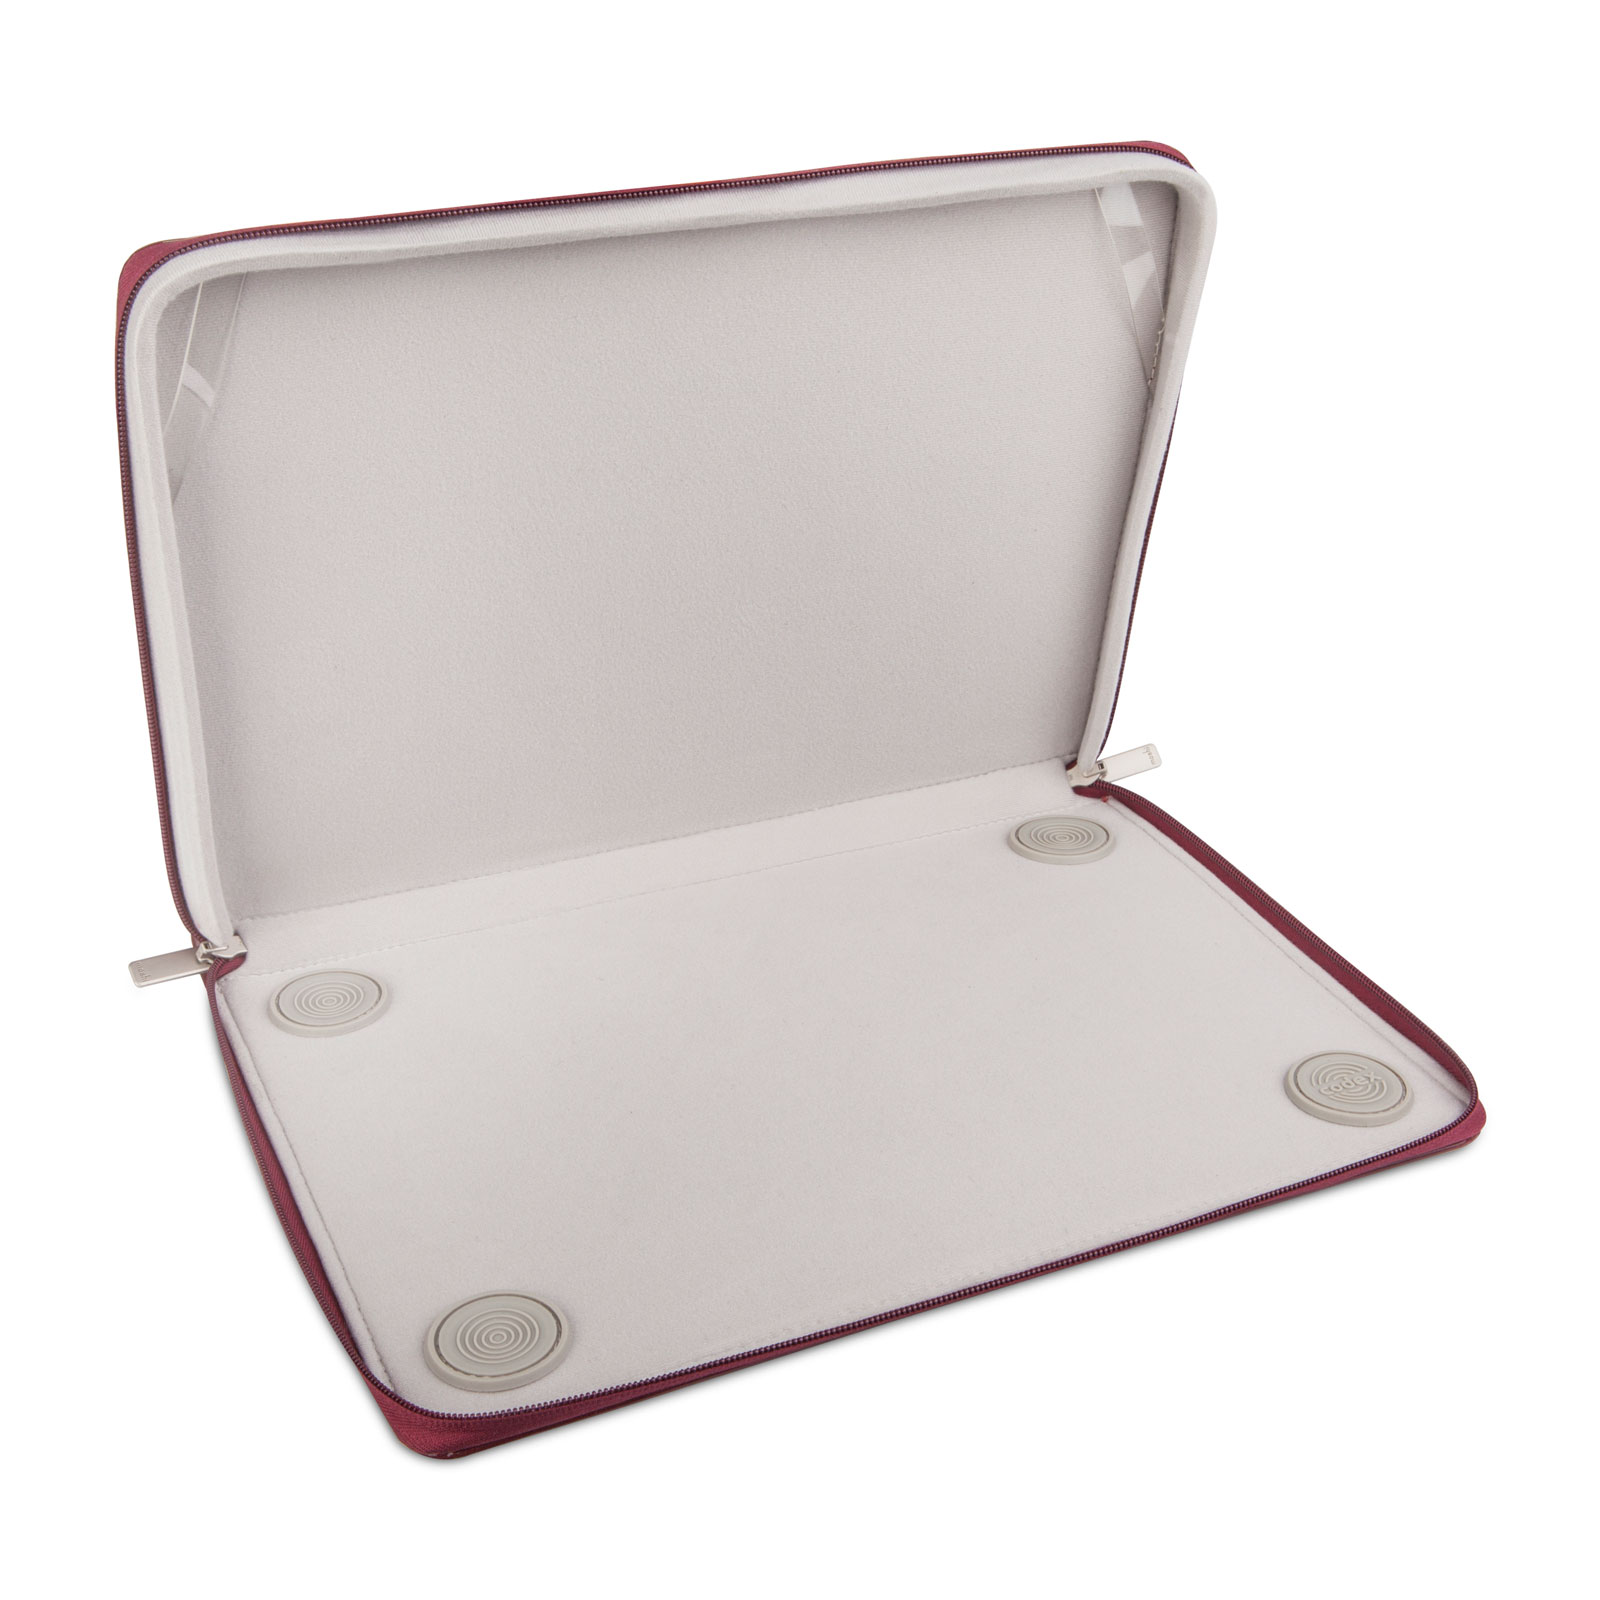 """Codex 13"""" Protective Carrying Case for MacBook-image"""